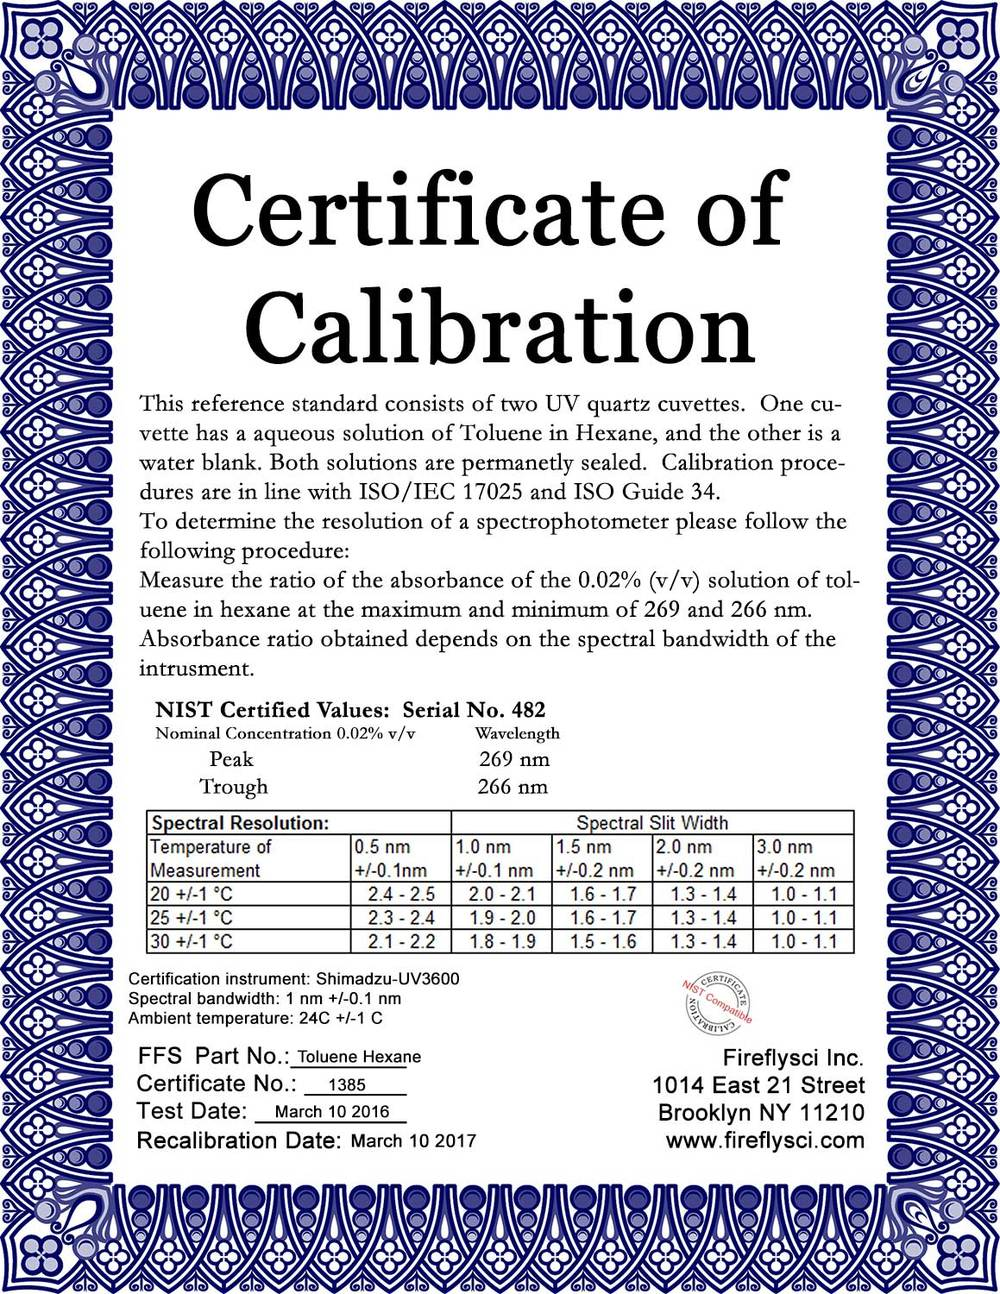 SRM-TIH Sample Certificate of Calibration